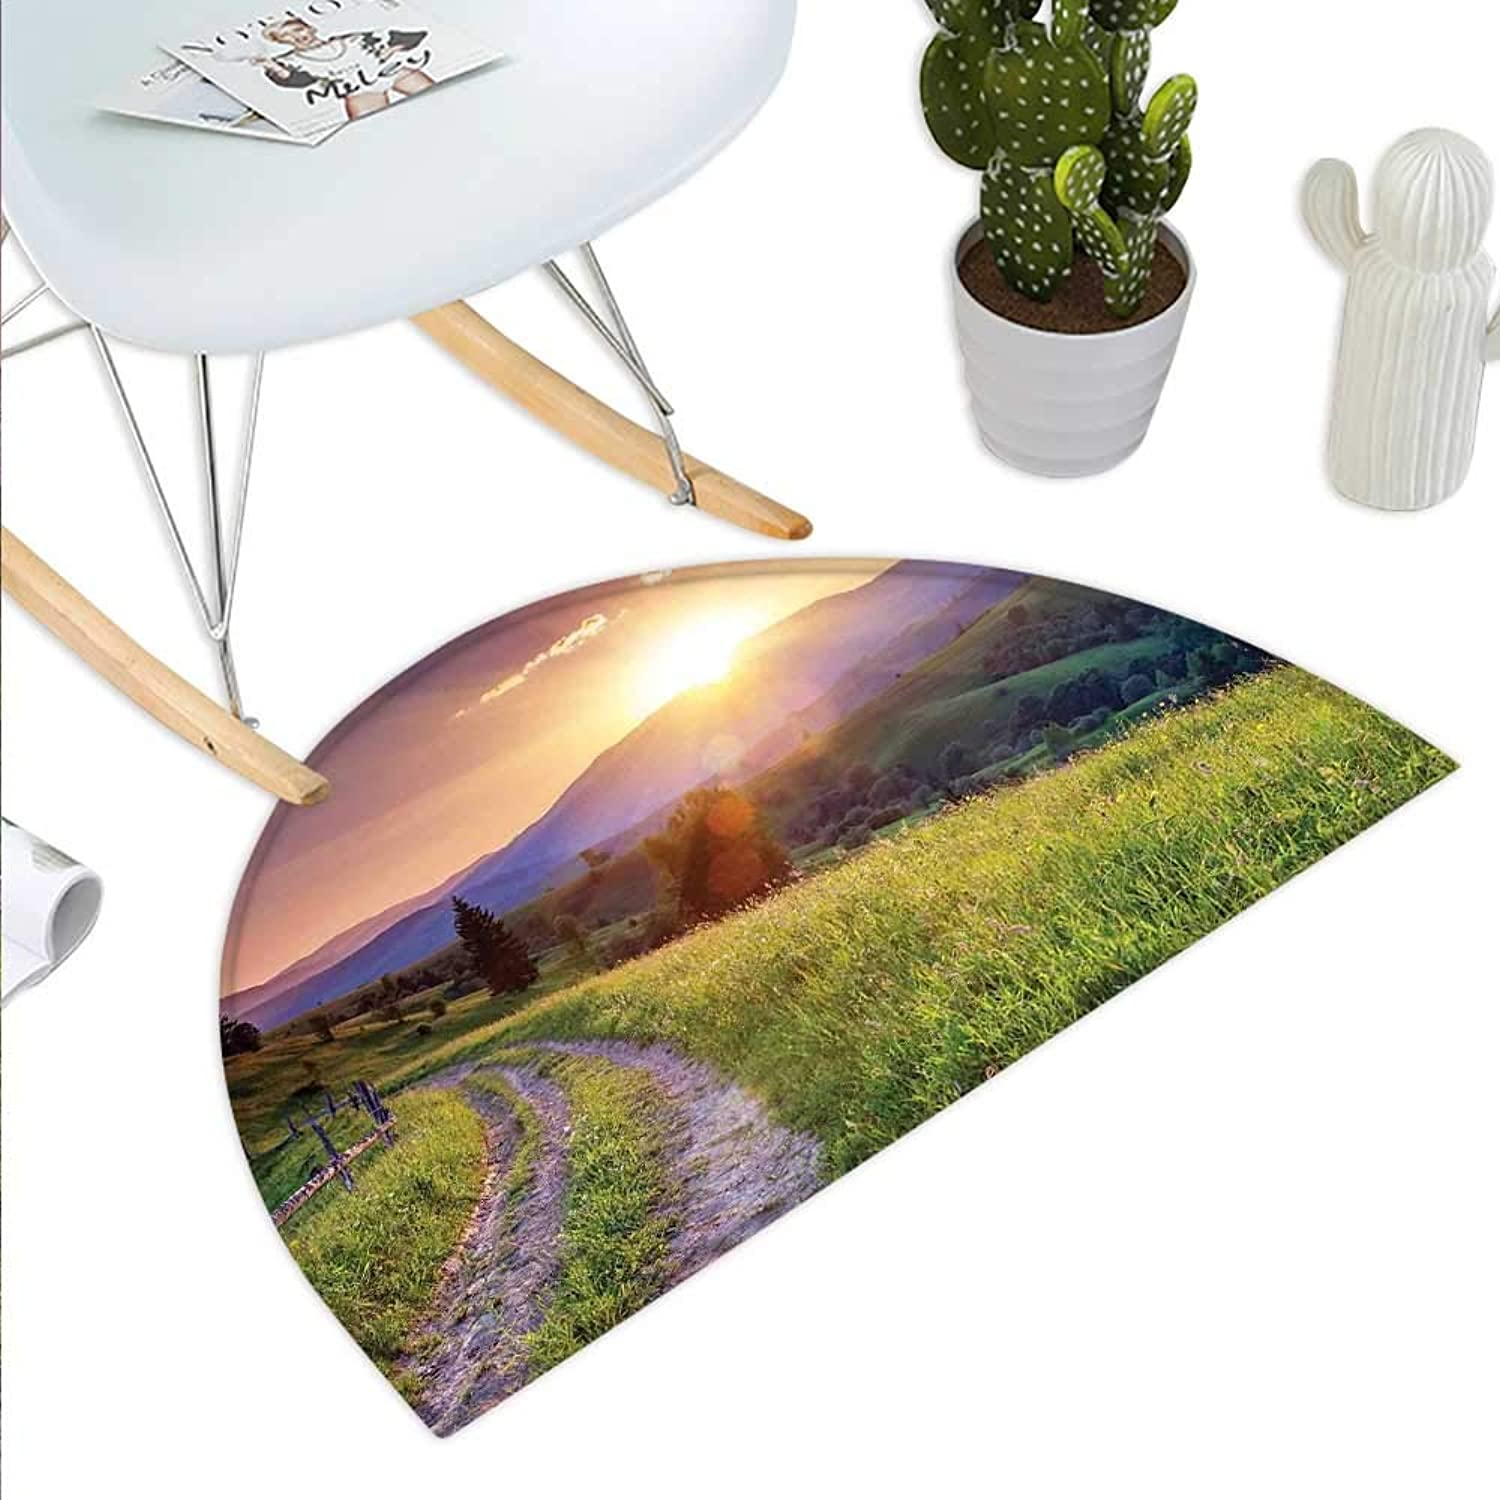 Nature Semicircle Doormat Sunset in The Mountain Landscape Rural Road Forest Countryside Wonderland Print Deco Halfmoon doormats H 35.4  xD 53.1  Multi